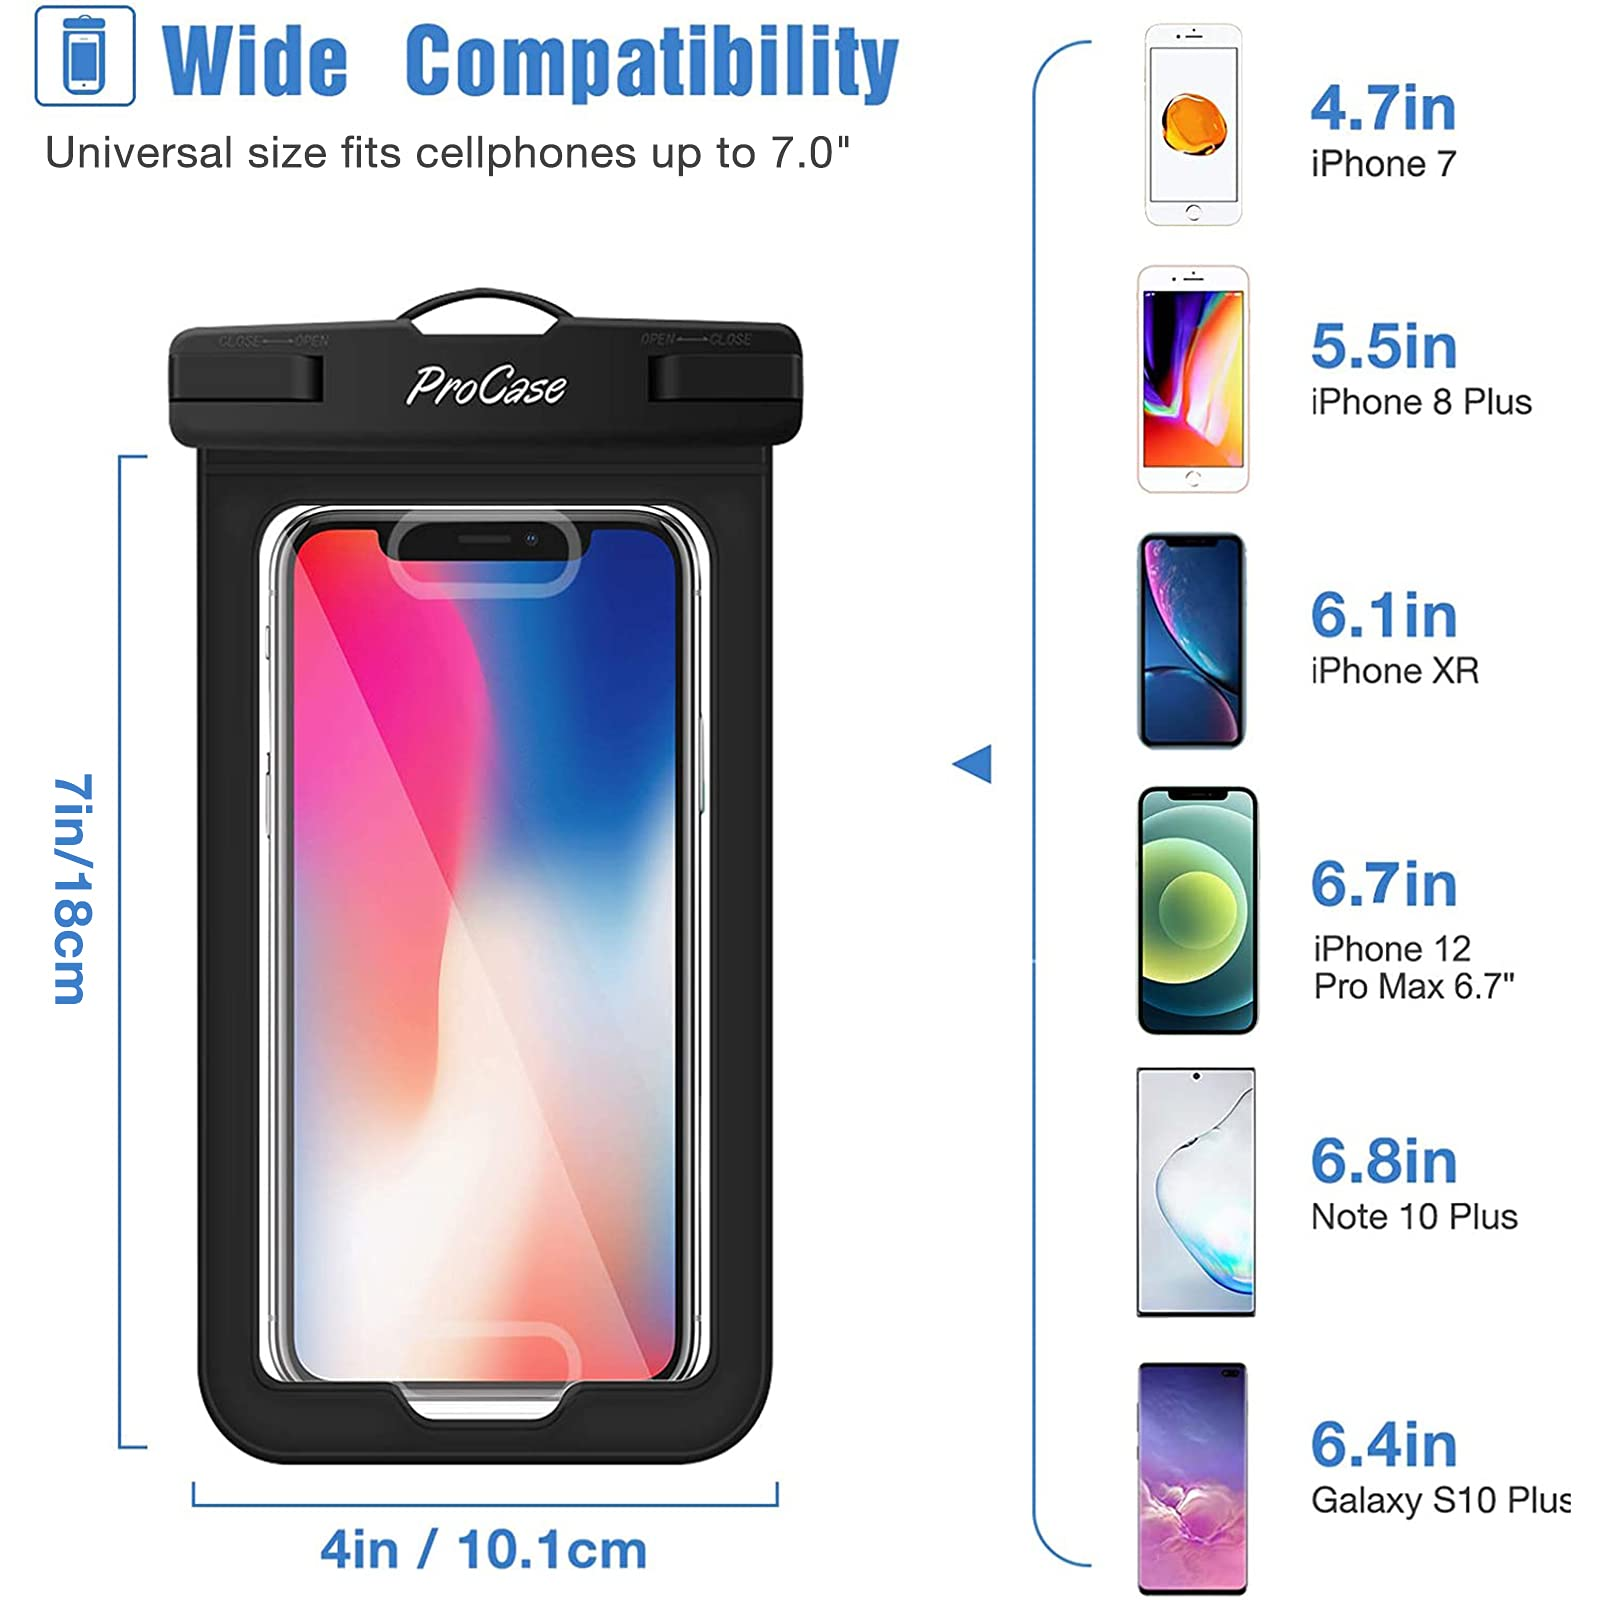 """(2 Pack) ProCase Waterproof Phone Pouch Case with Touch ID up to 7"""", Cellphone Dry Bag for iPhone 13 Pro Max 13 Mini, 12 11 Pro Max Mini Xs Max XR X 8 7 Plus SE with Fingerprint Recognition -Black"""